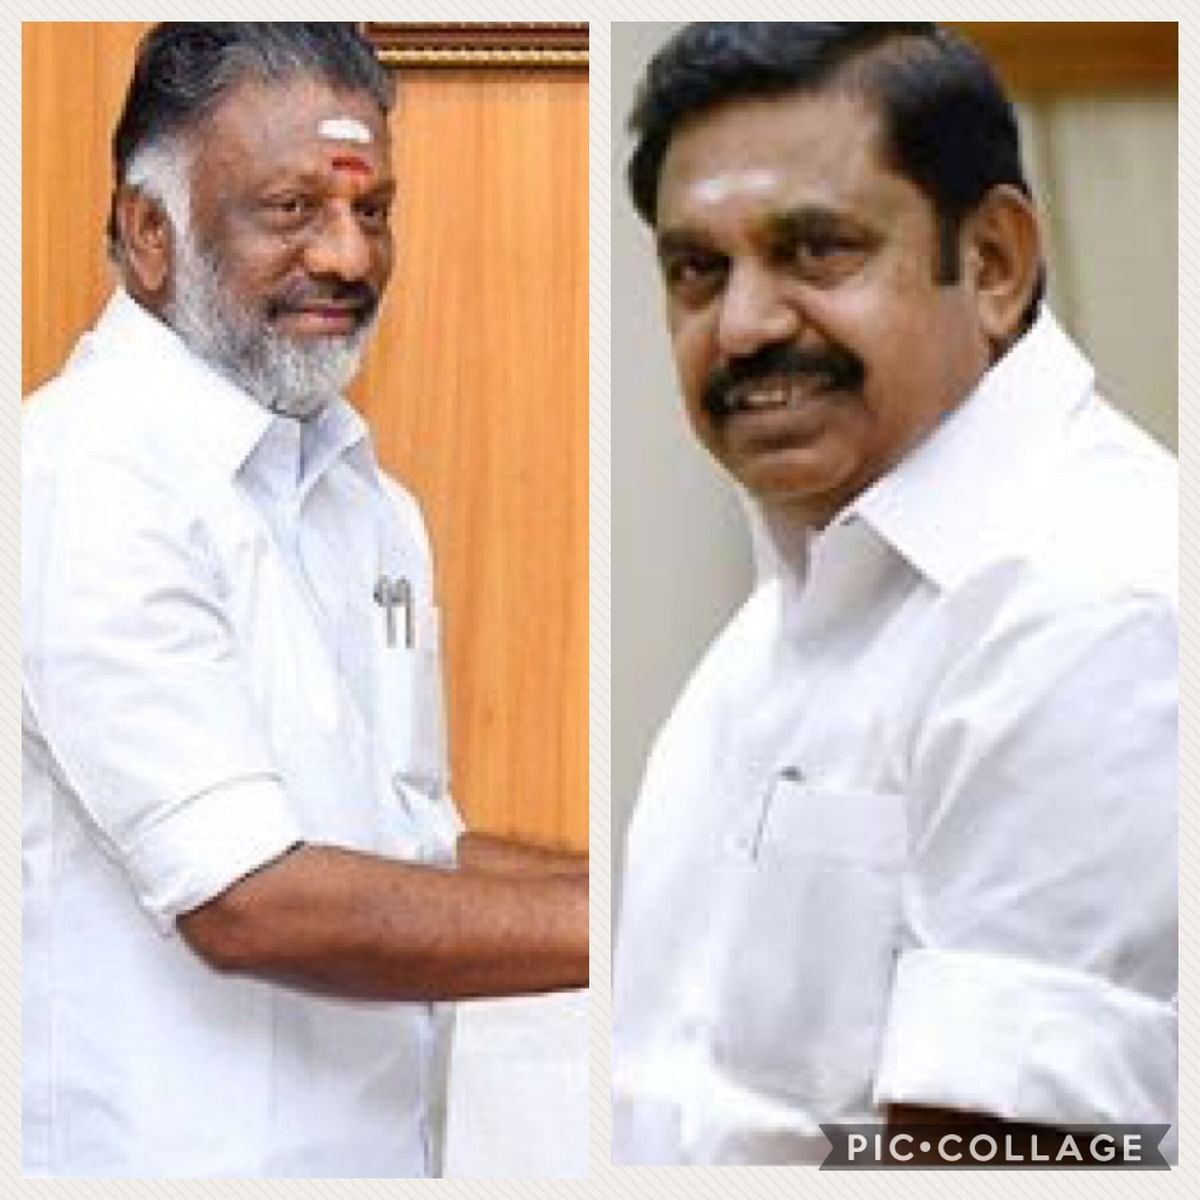 Merger of two AIADMK factions soon : CM